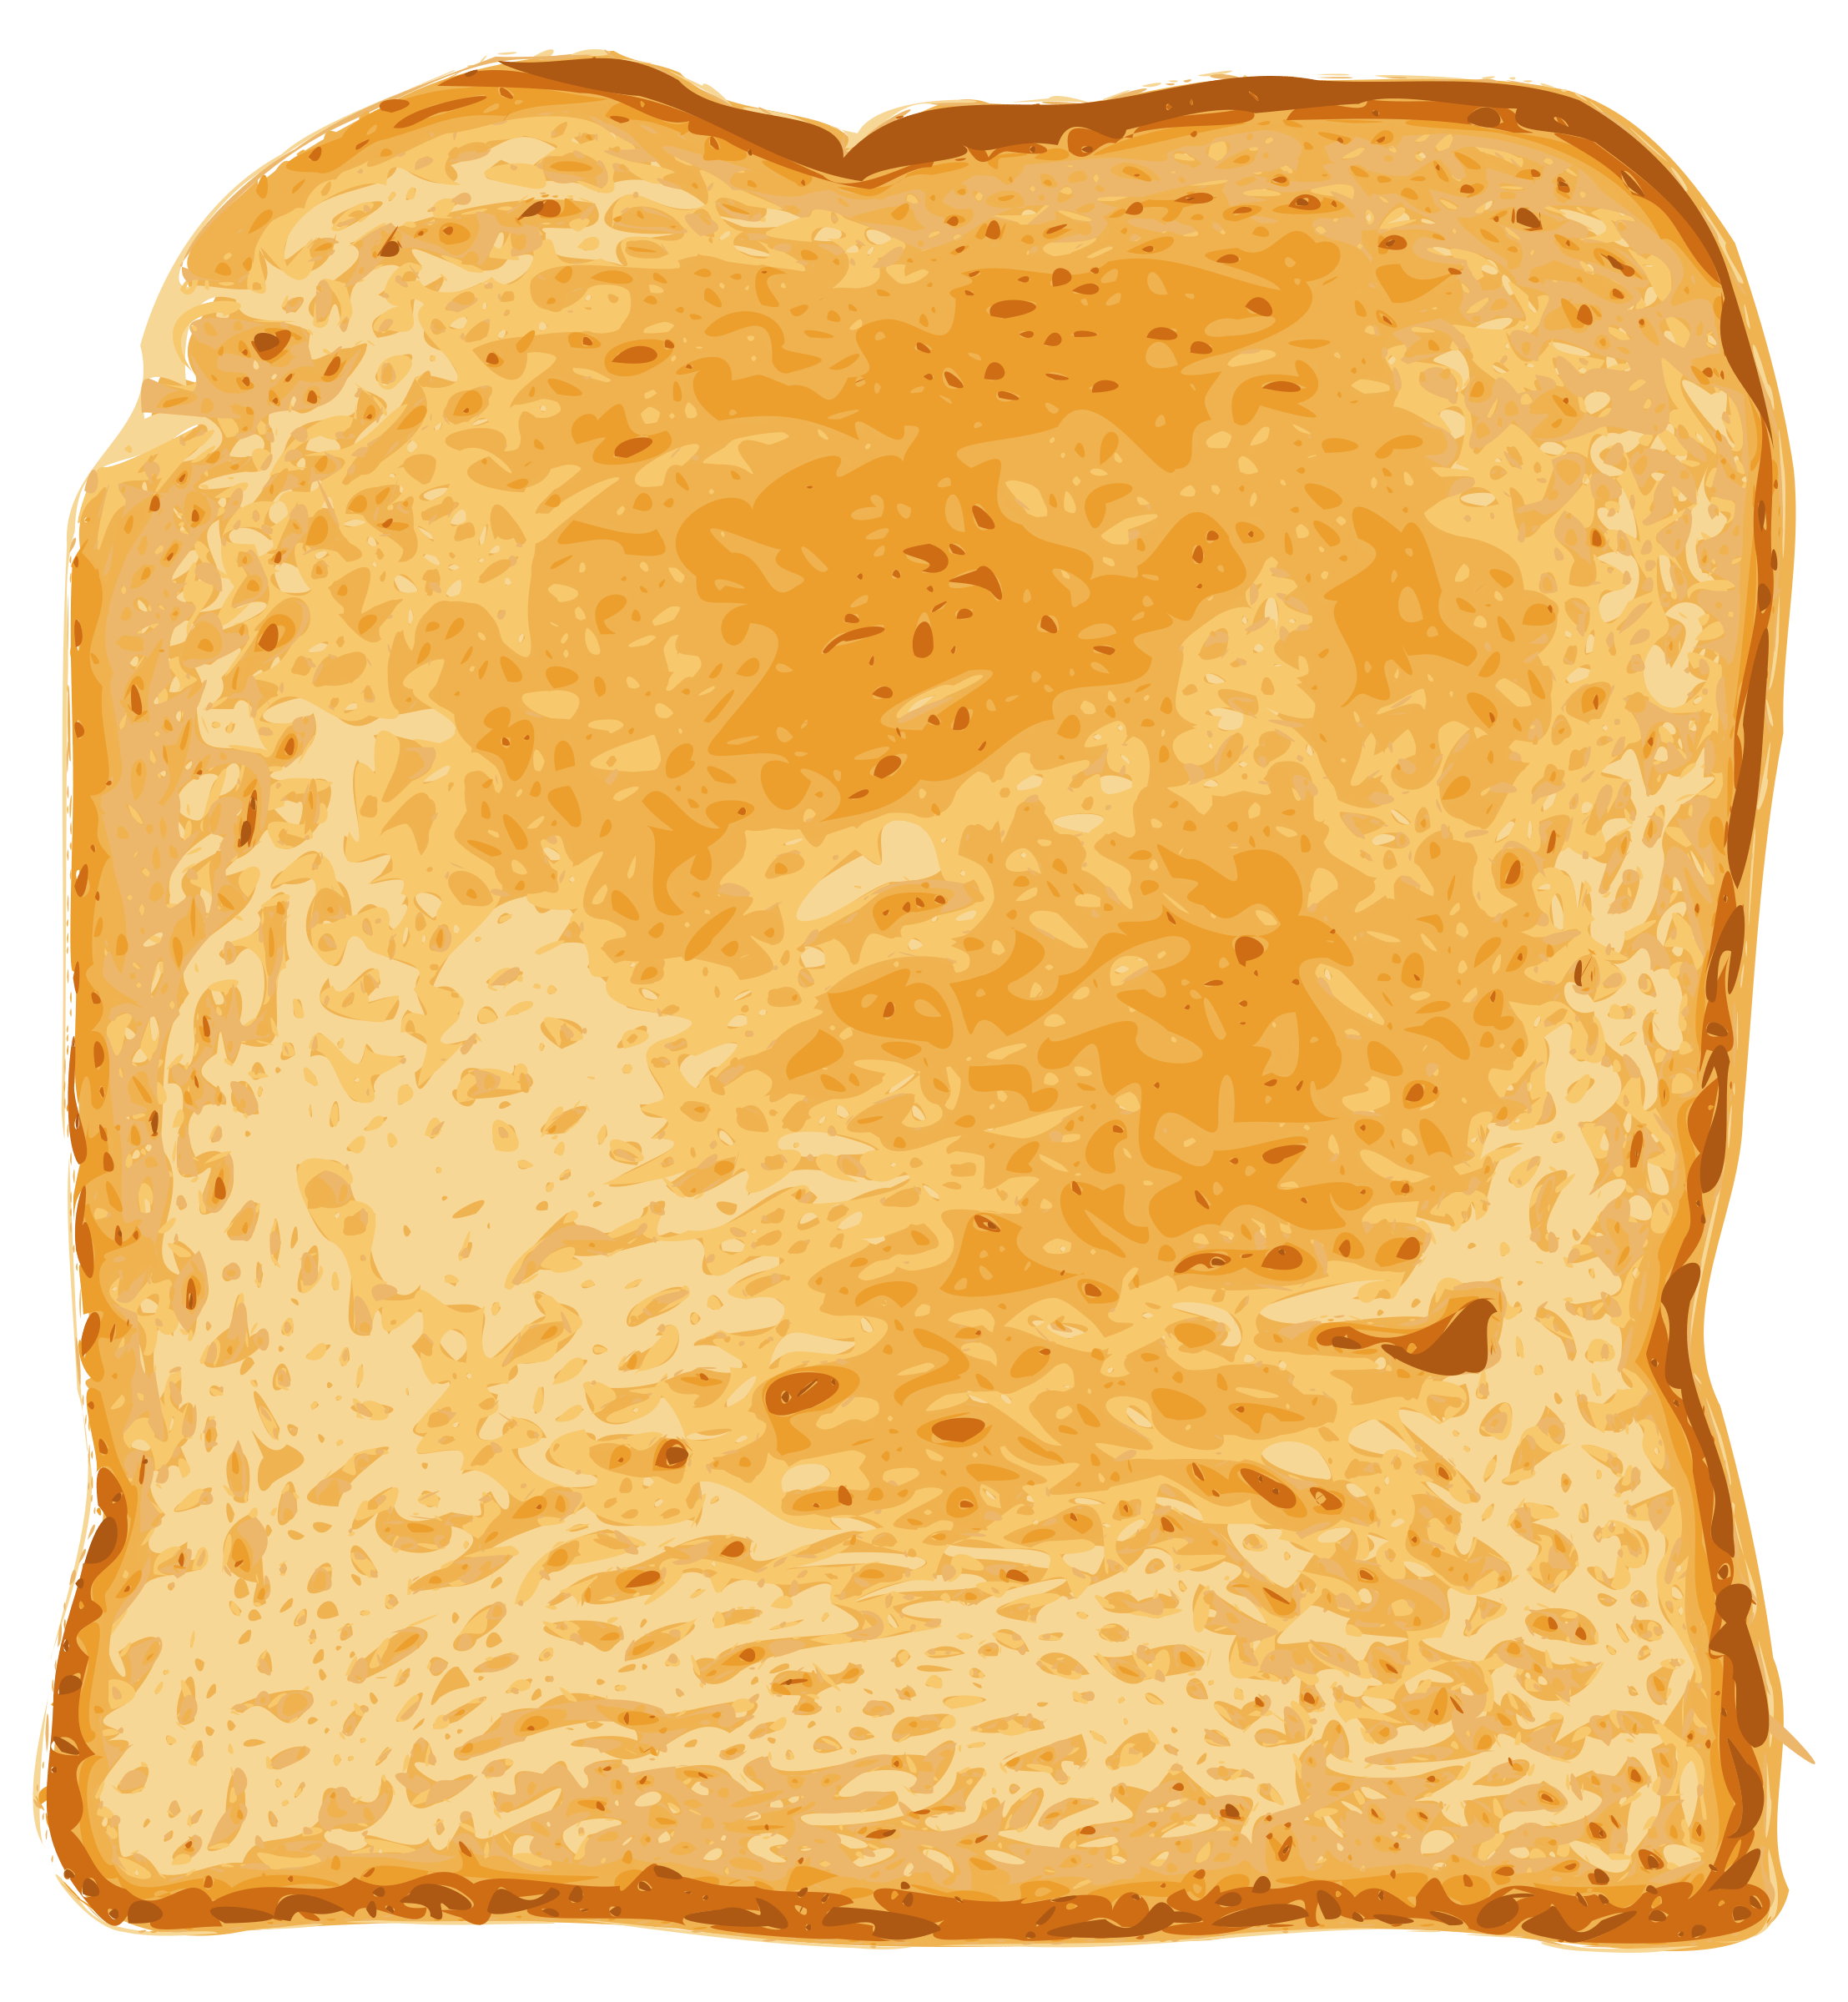 Toast png free images. Toaster clipart transparent background